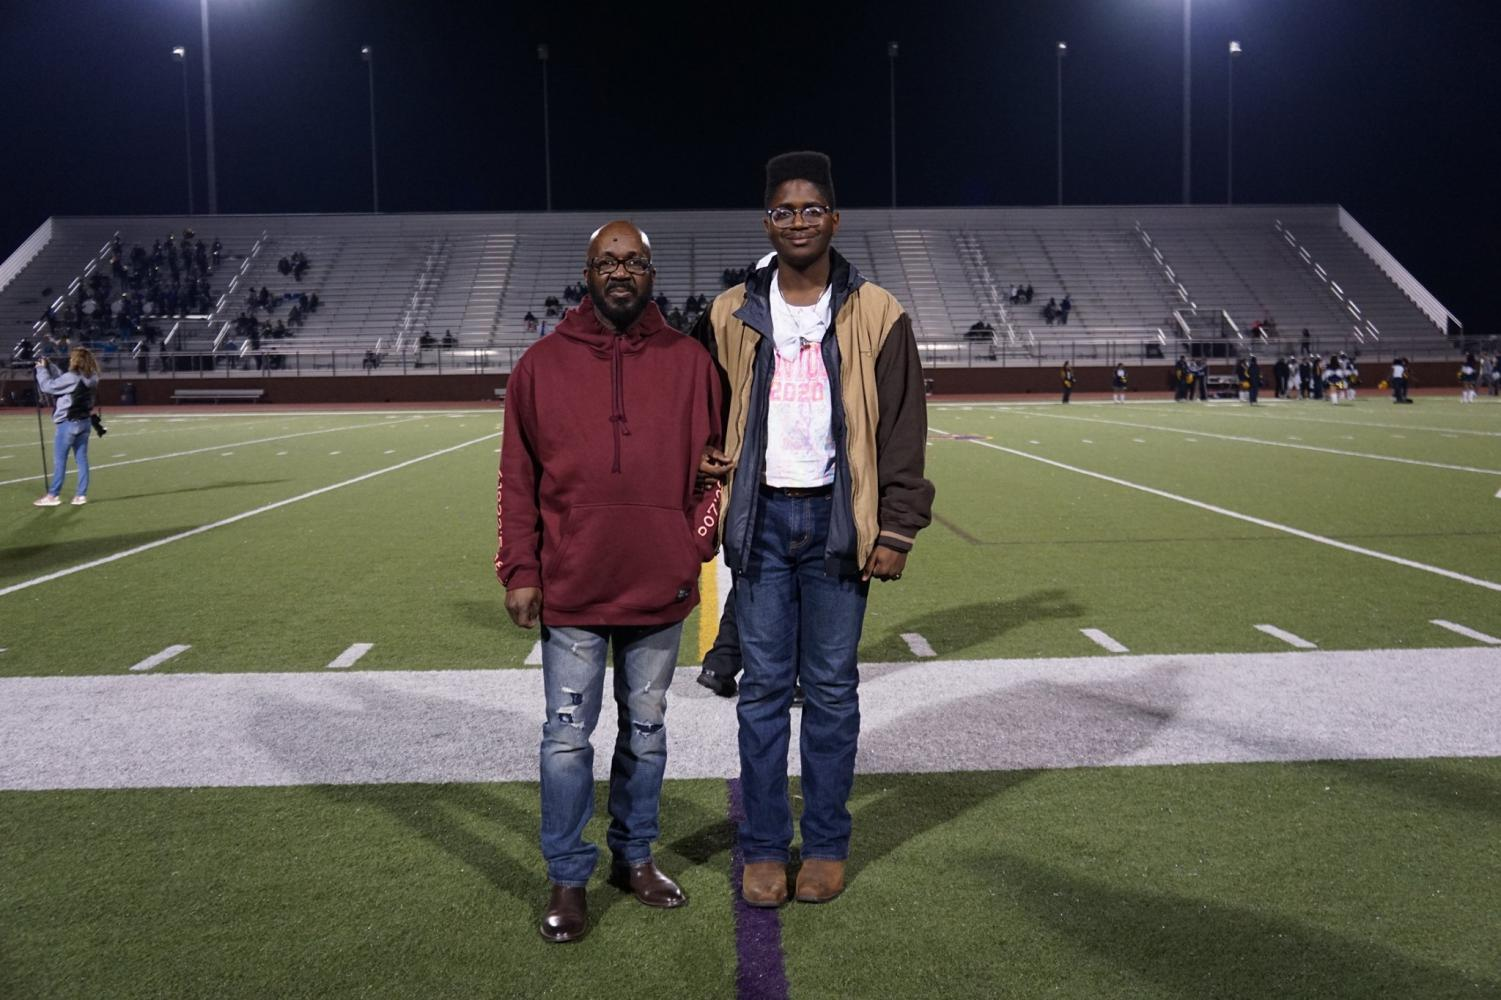 Trey with his dad, Norman Wright.